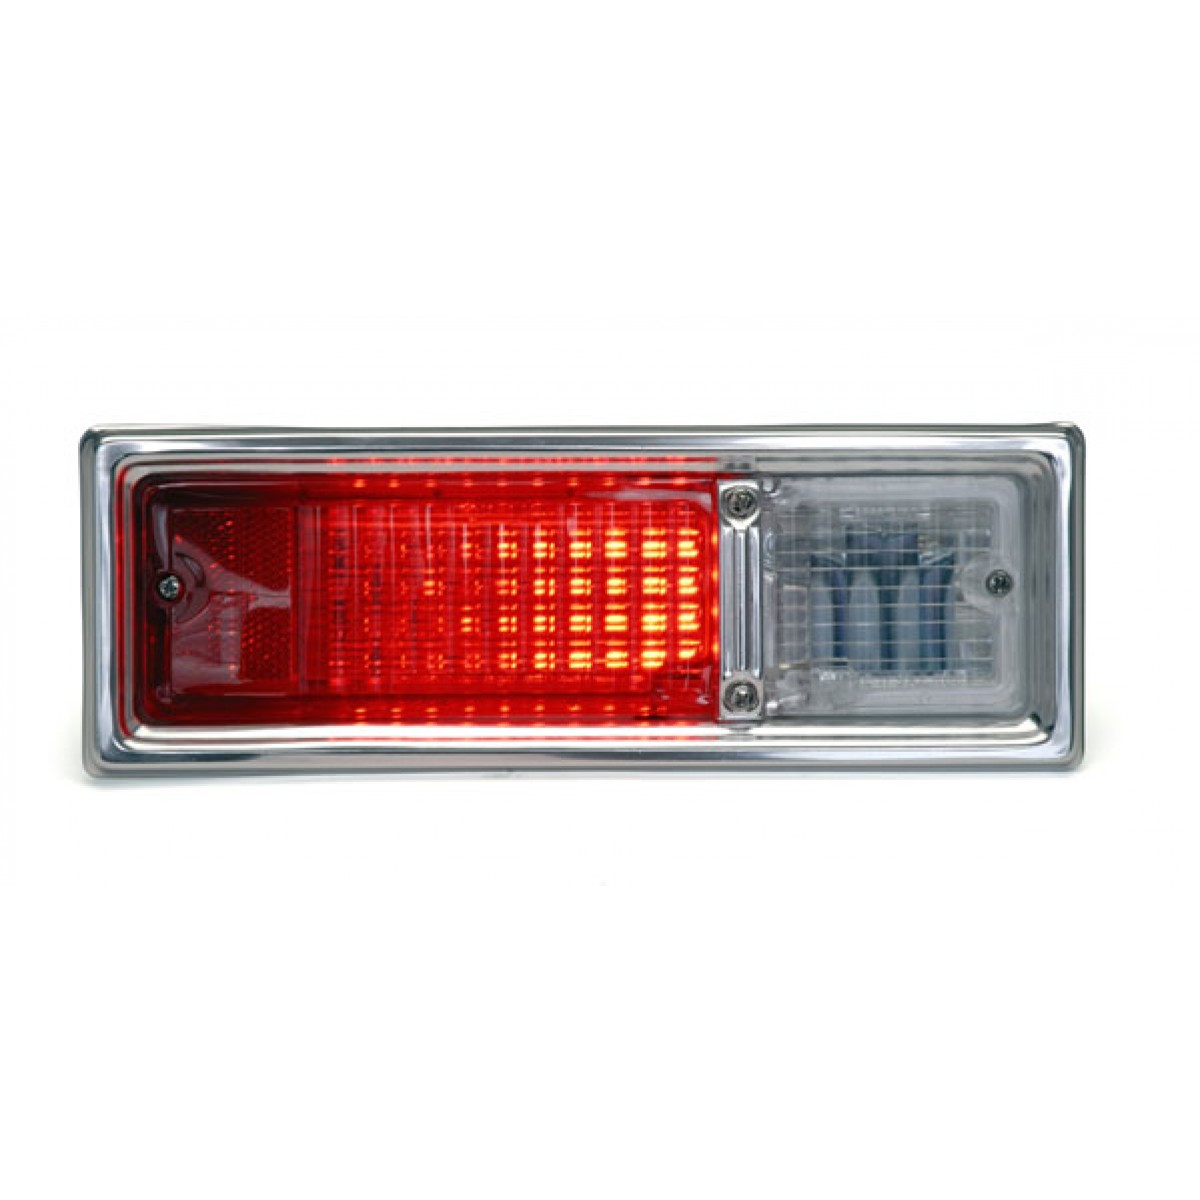 1968 1969 Chevy Nova Led Tail Lights Dakota Digital Lat